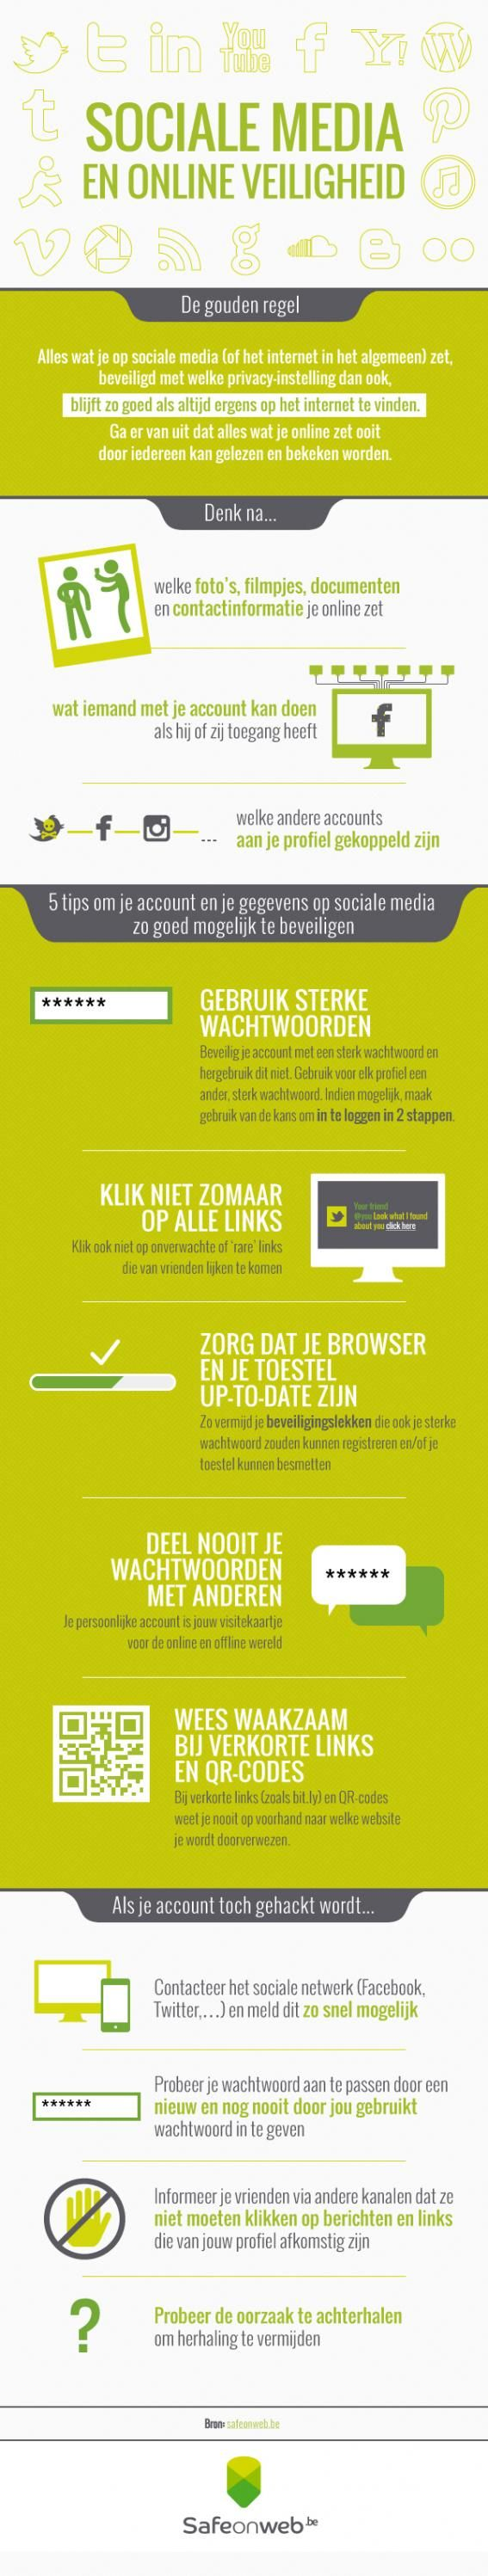 Infographic sociale media en online veiligheid #Privacy #tips #allesmetmate